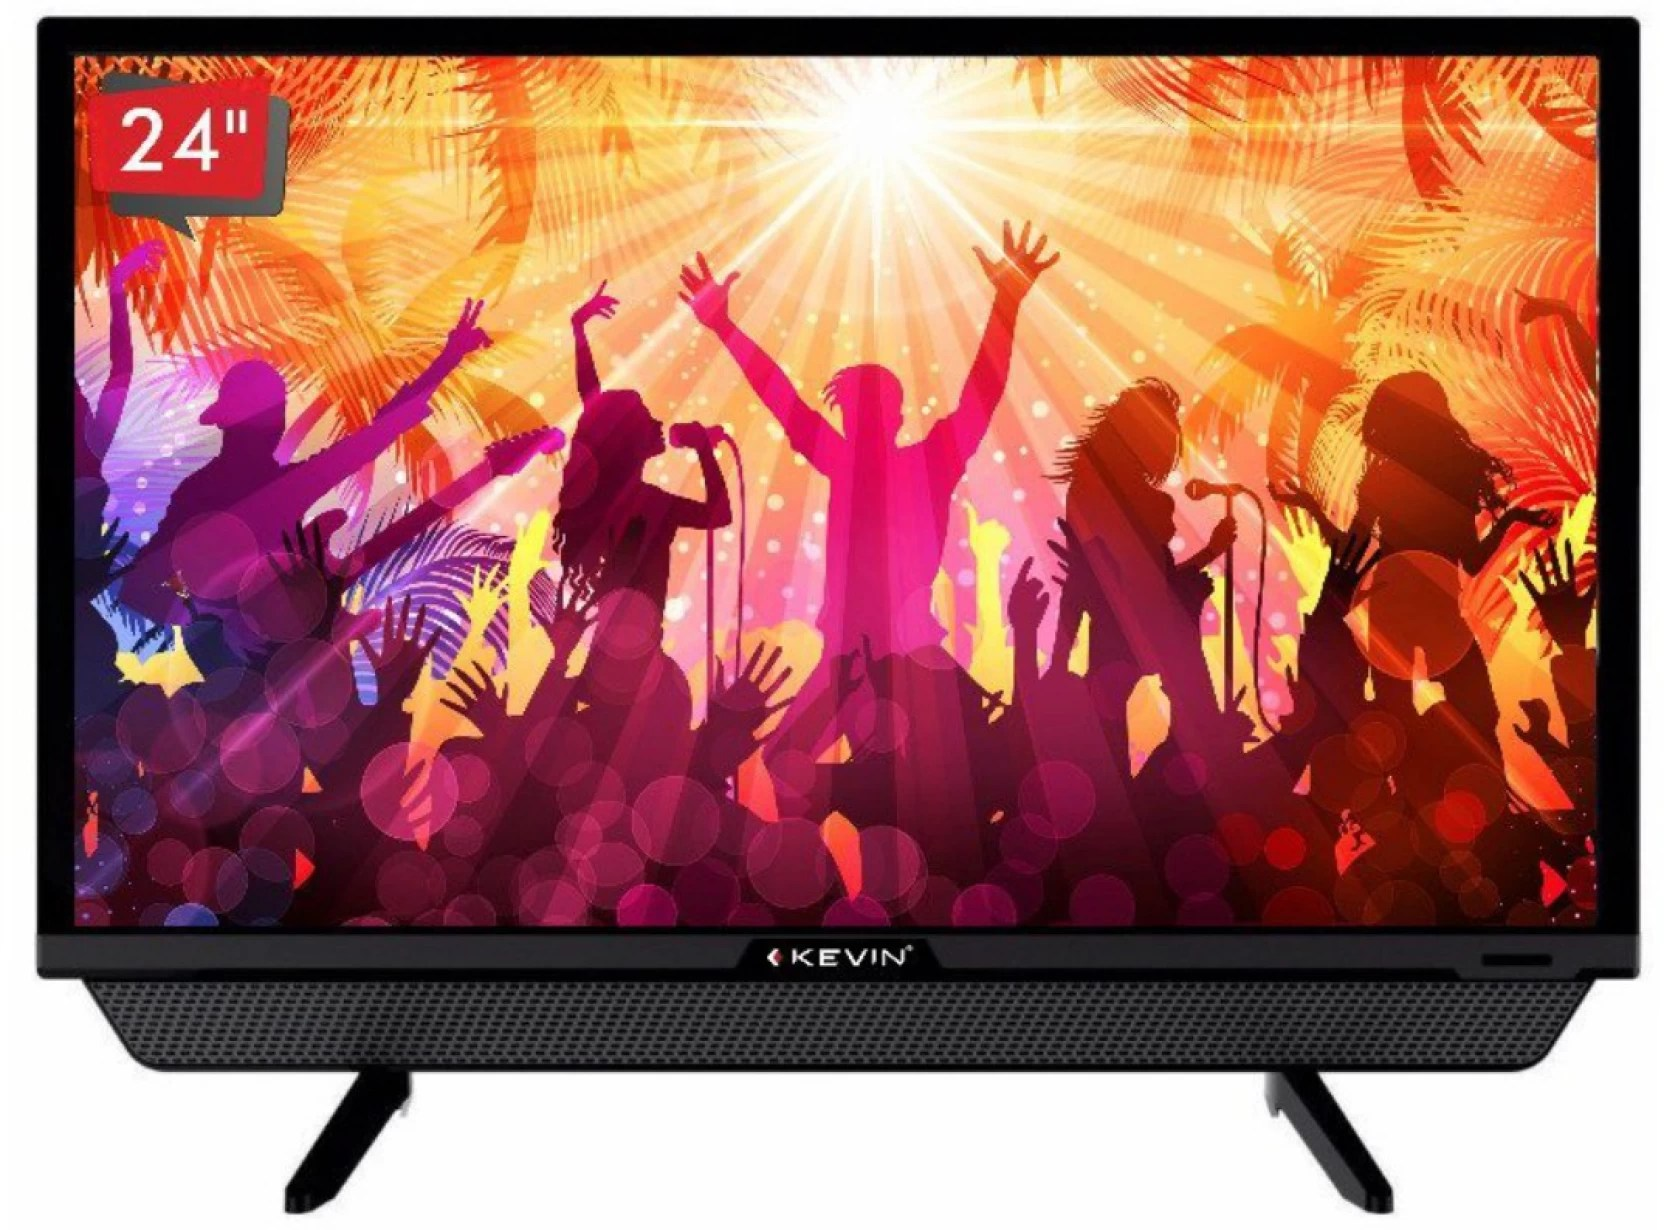 60cm Tv Kevin 60cm 24 Inch Hd Ready Led Tv